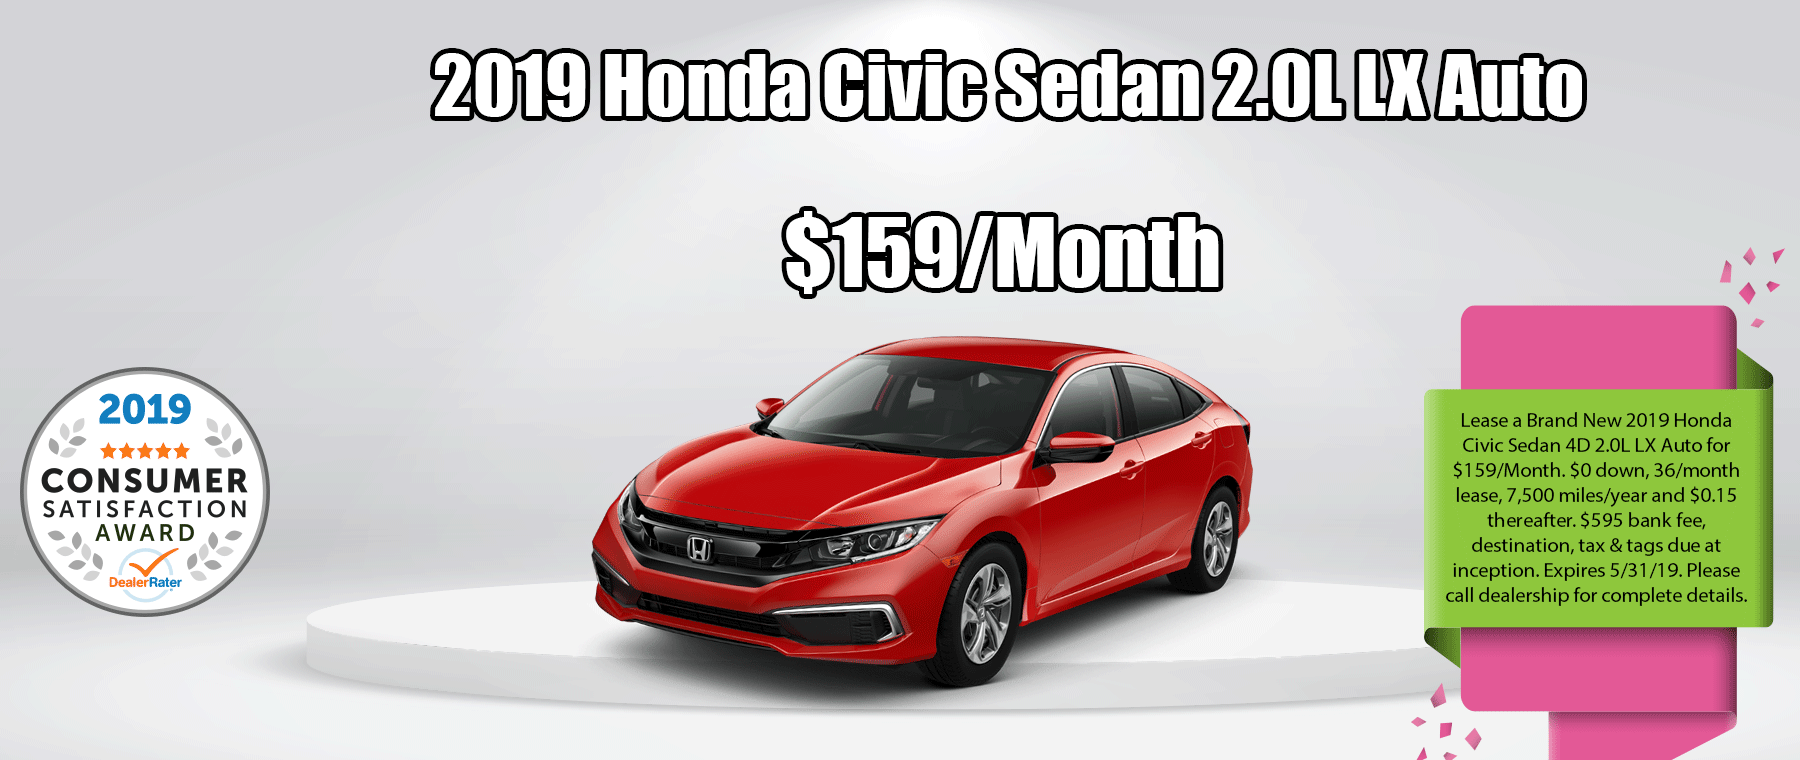 2019-Civic-Sedan-2.0L-LX-Lease